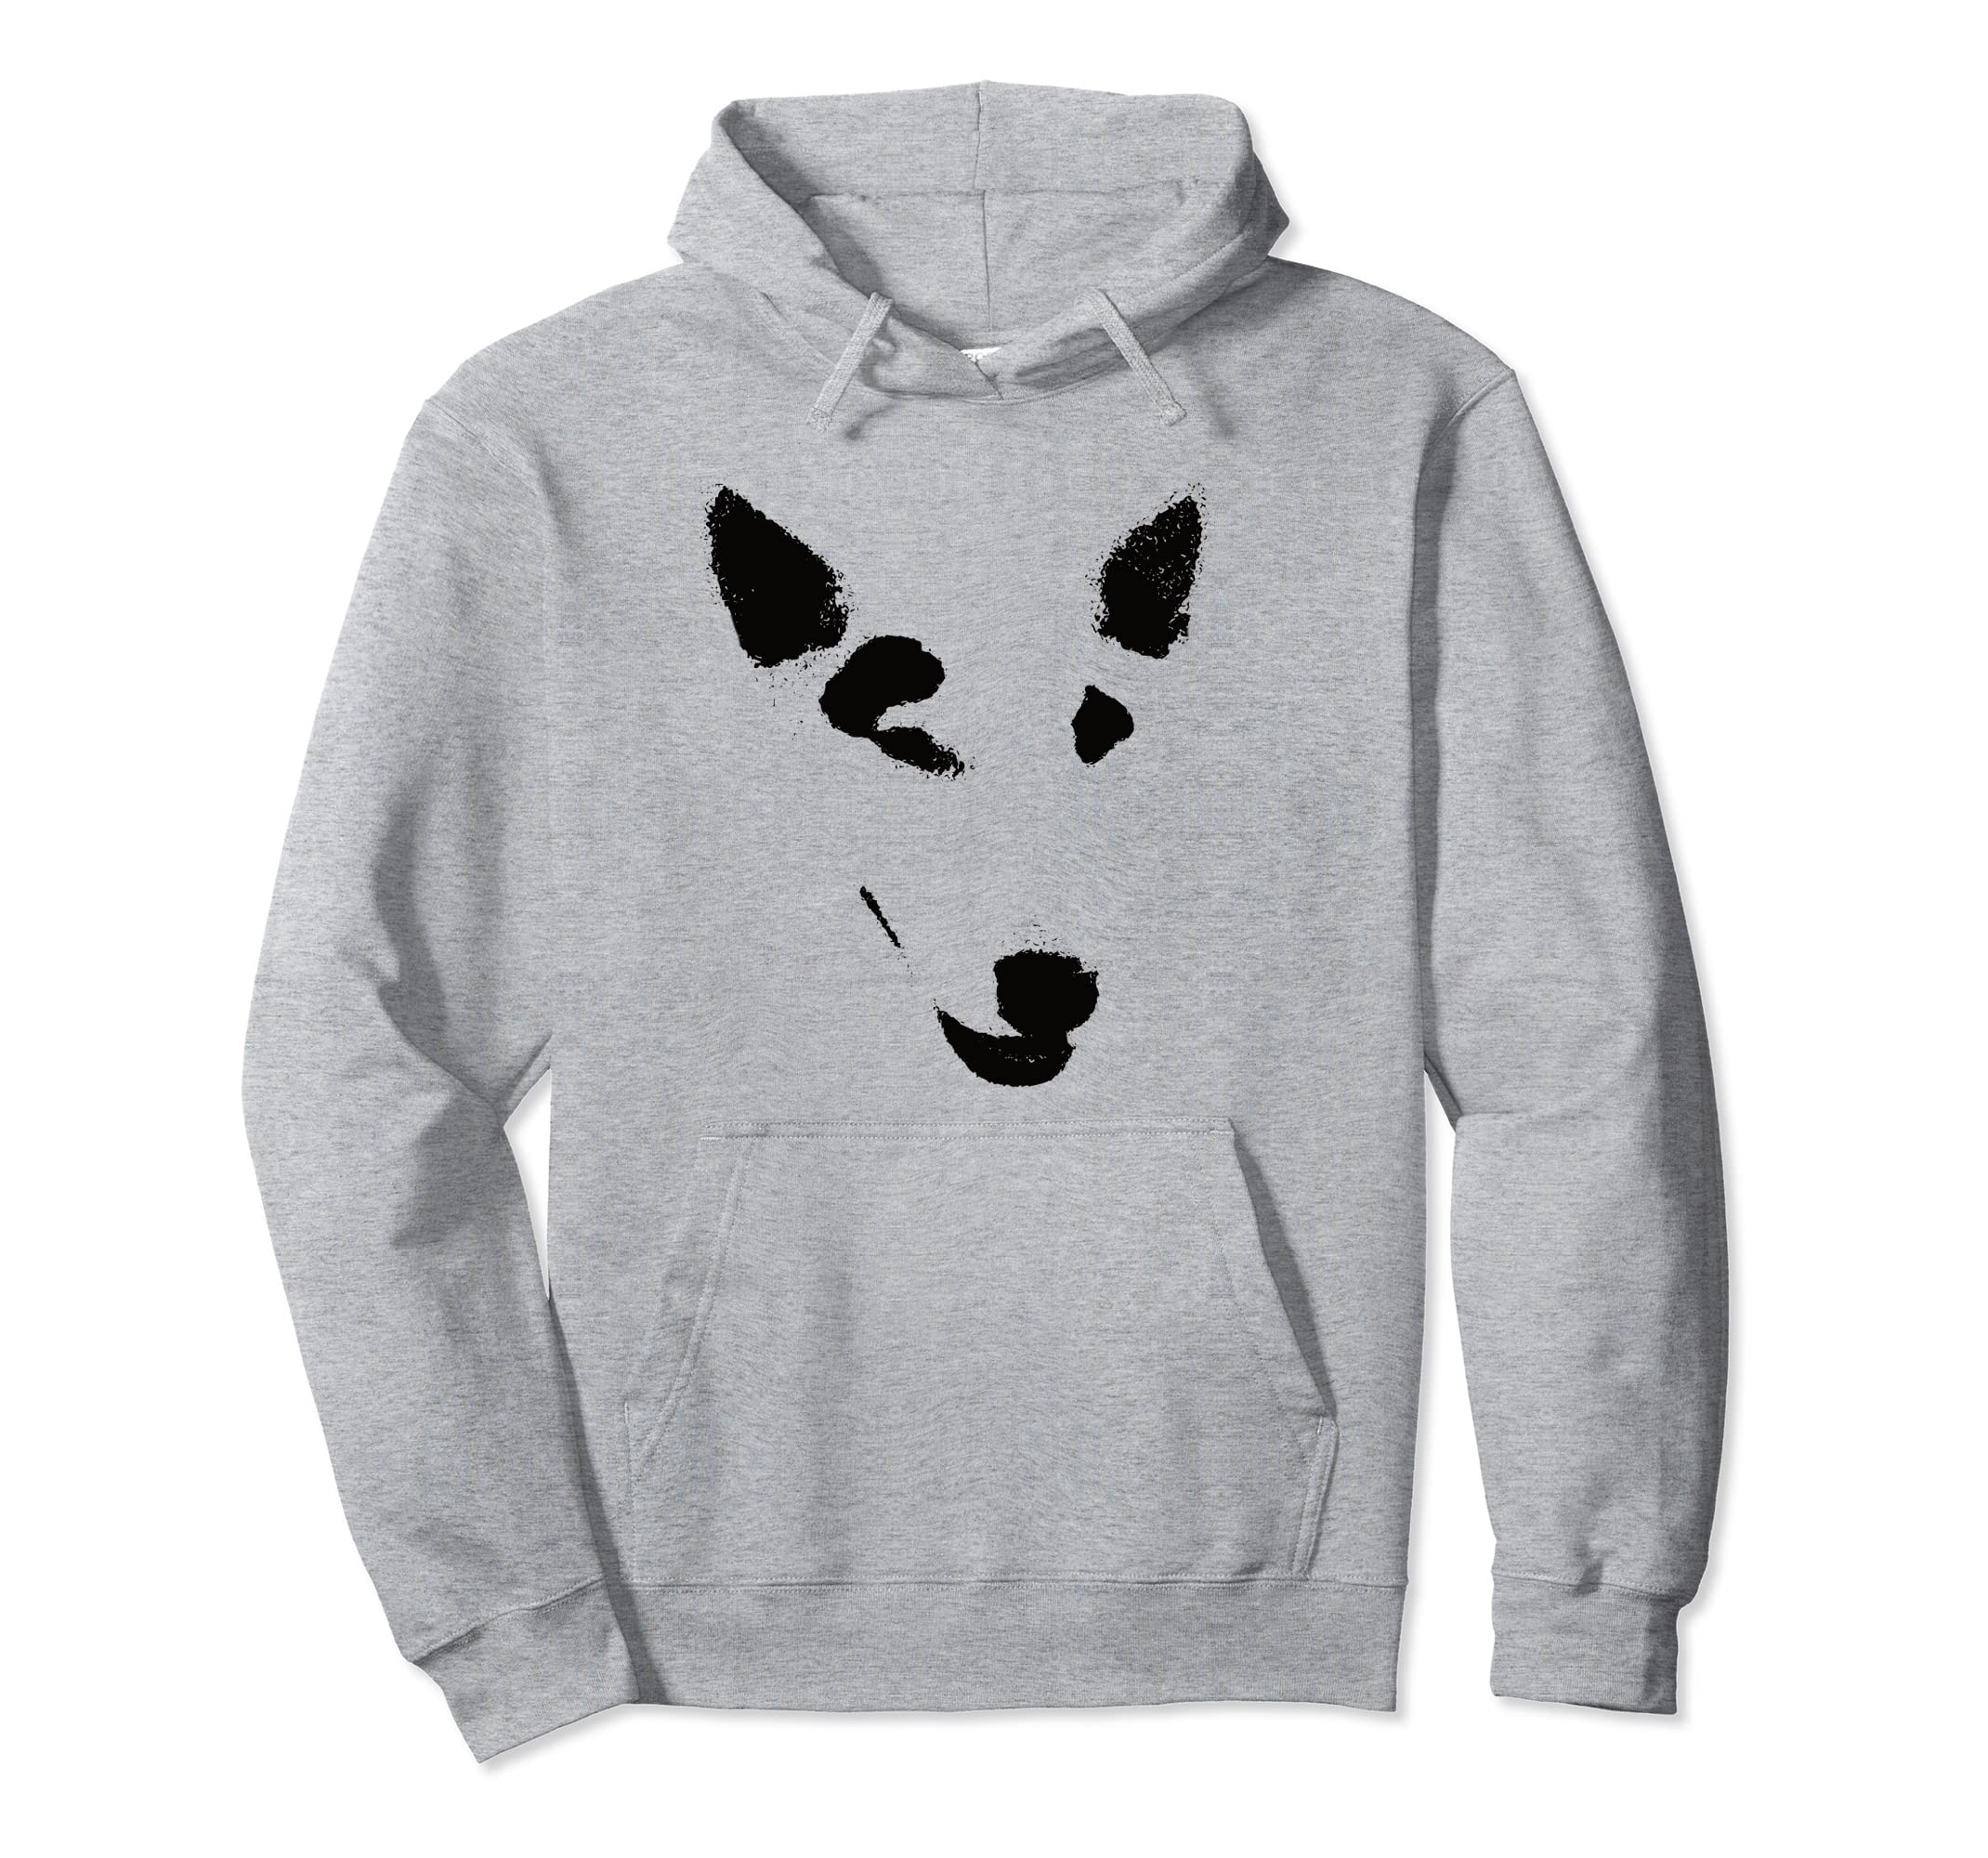 Miniature Bull Terrier Hoodie - Dog Mom Dad Christmas Gift-SFL